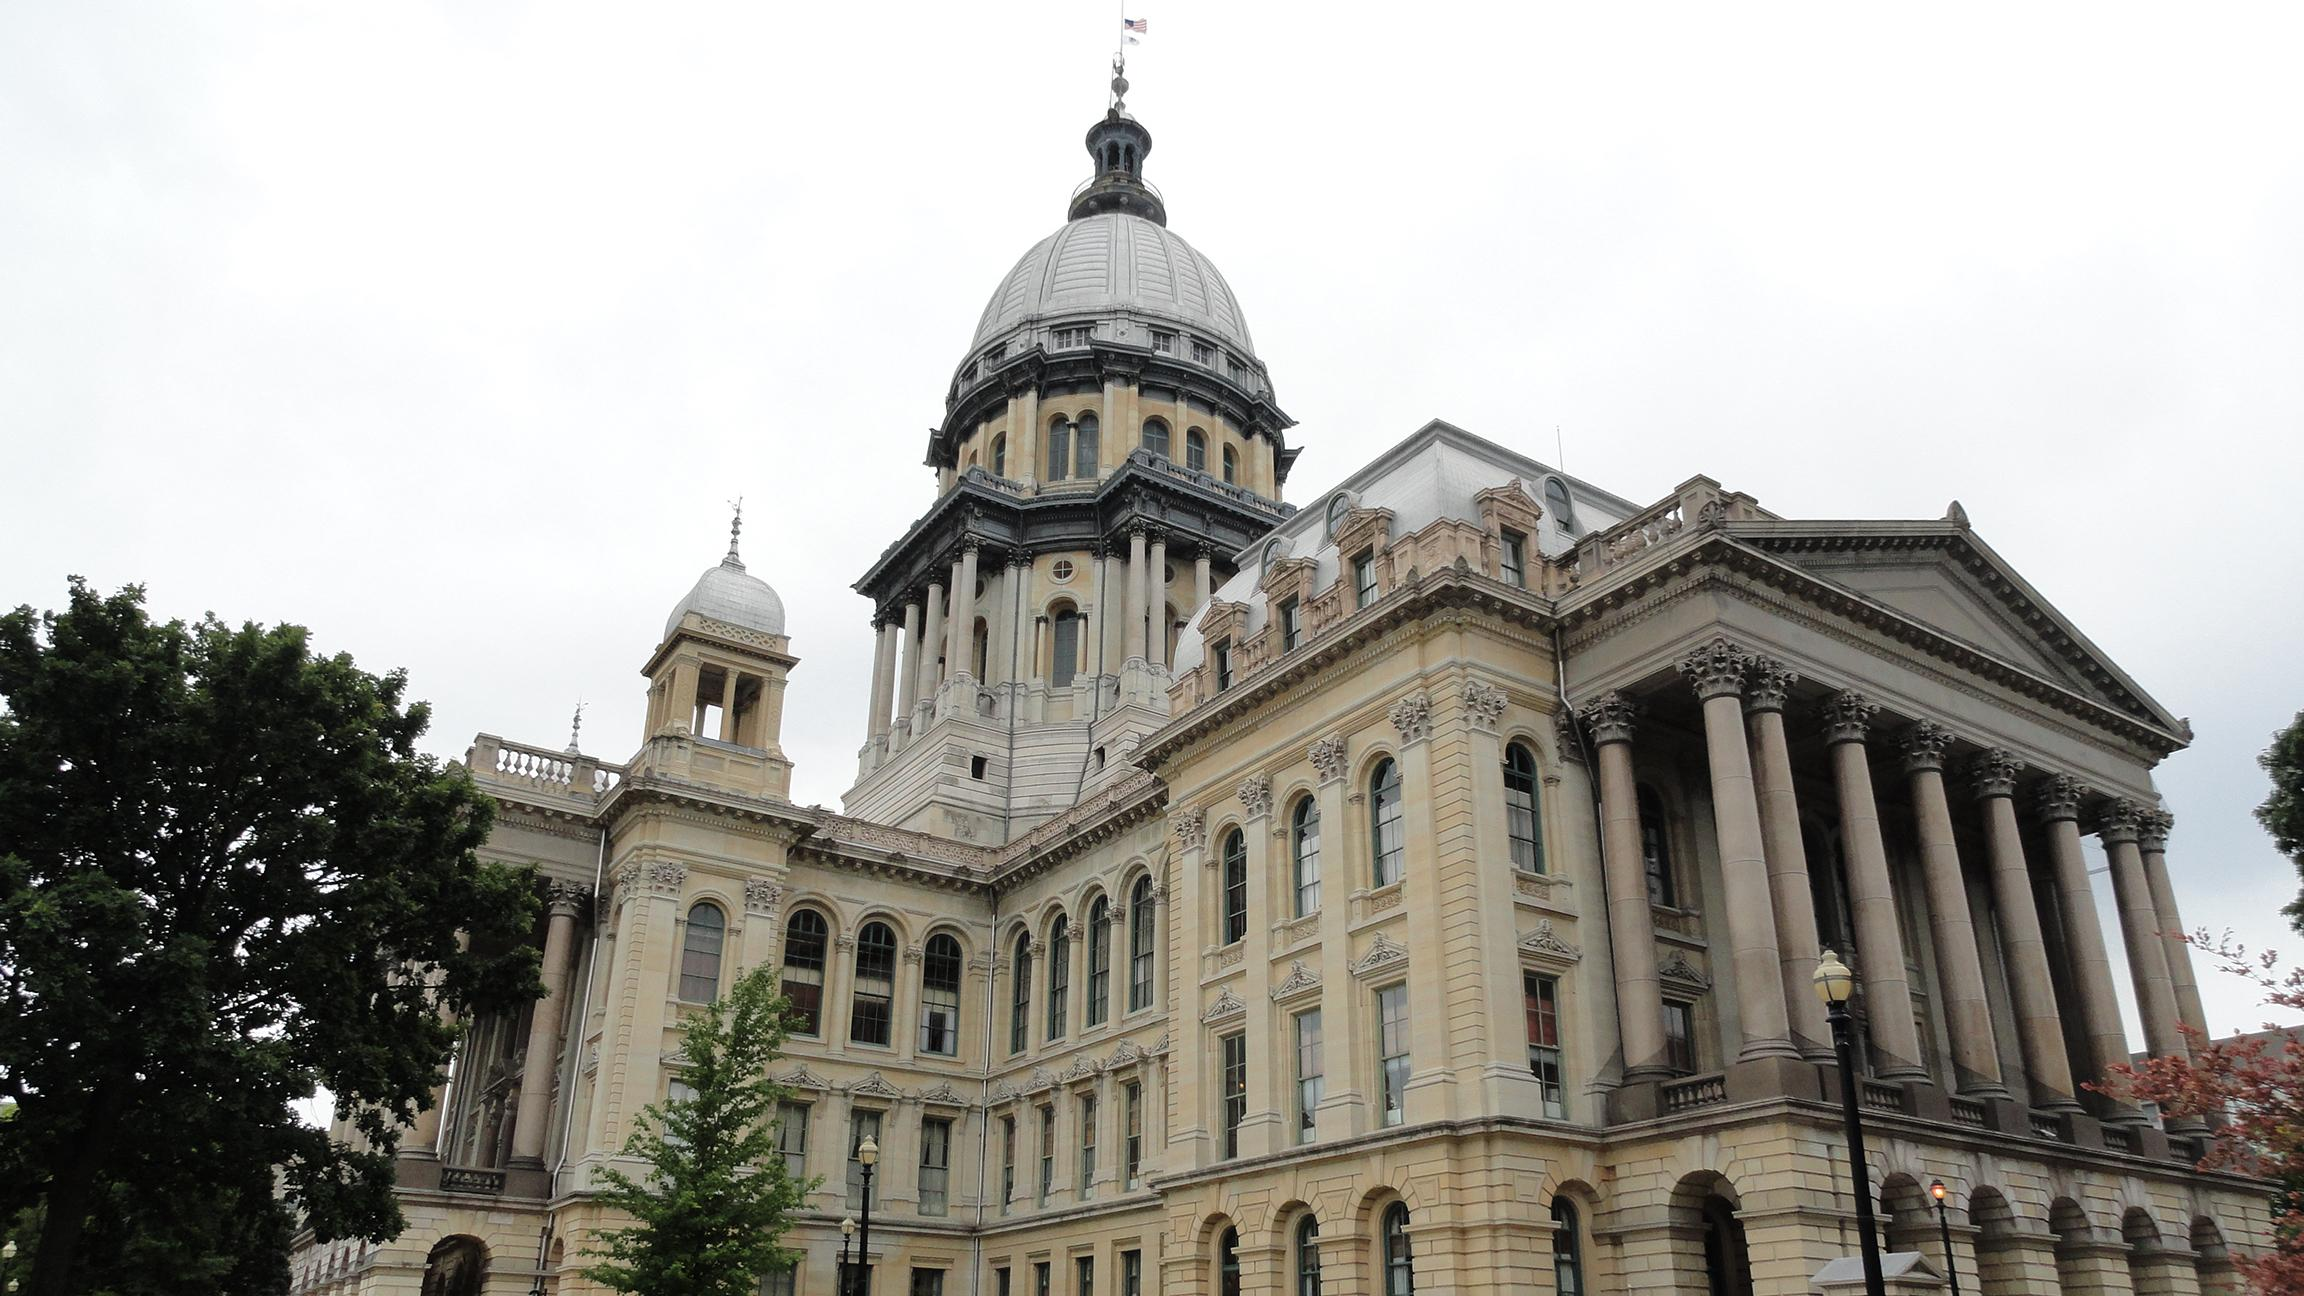 Illinois Senate Approves State-Funded Abortion Coverage